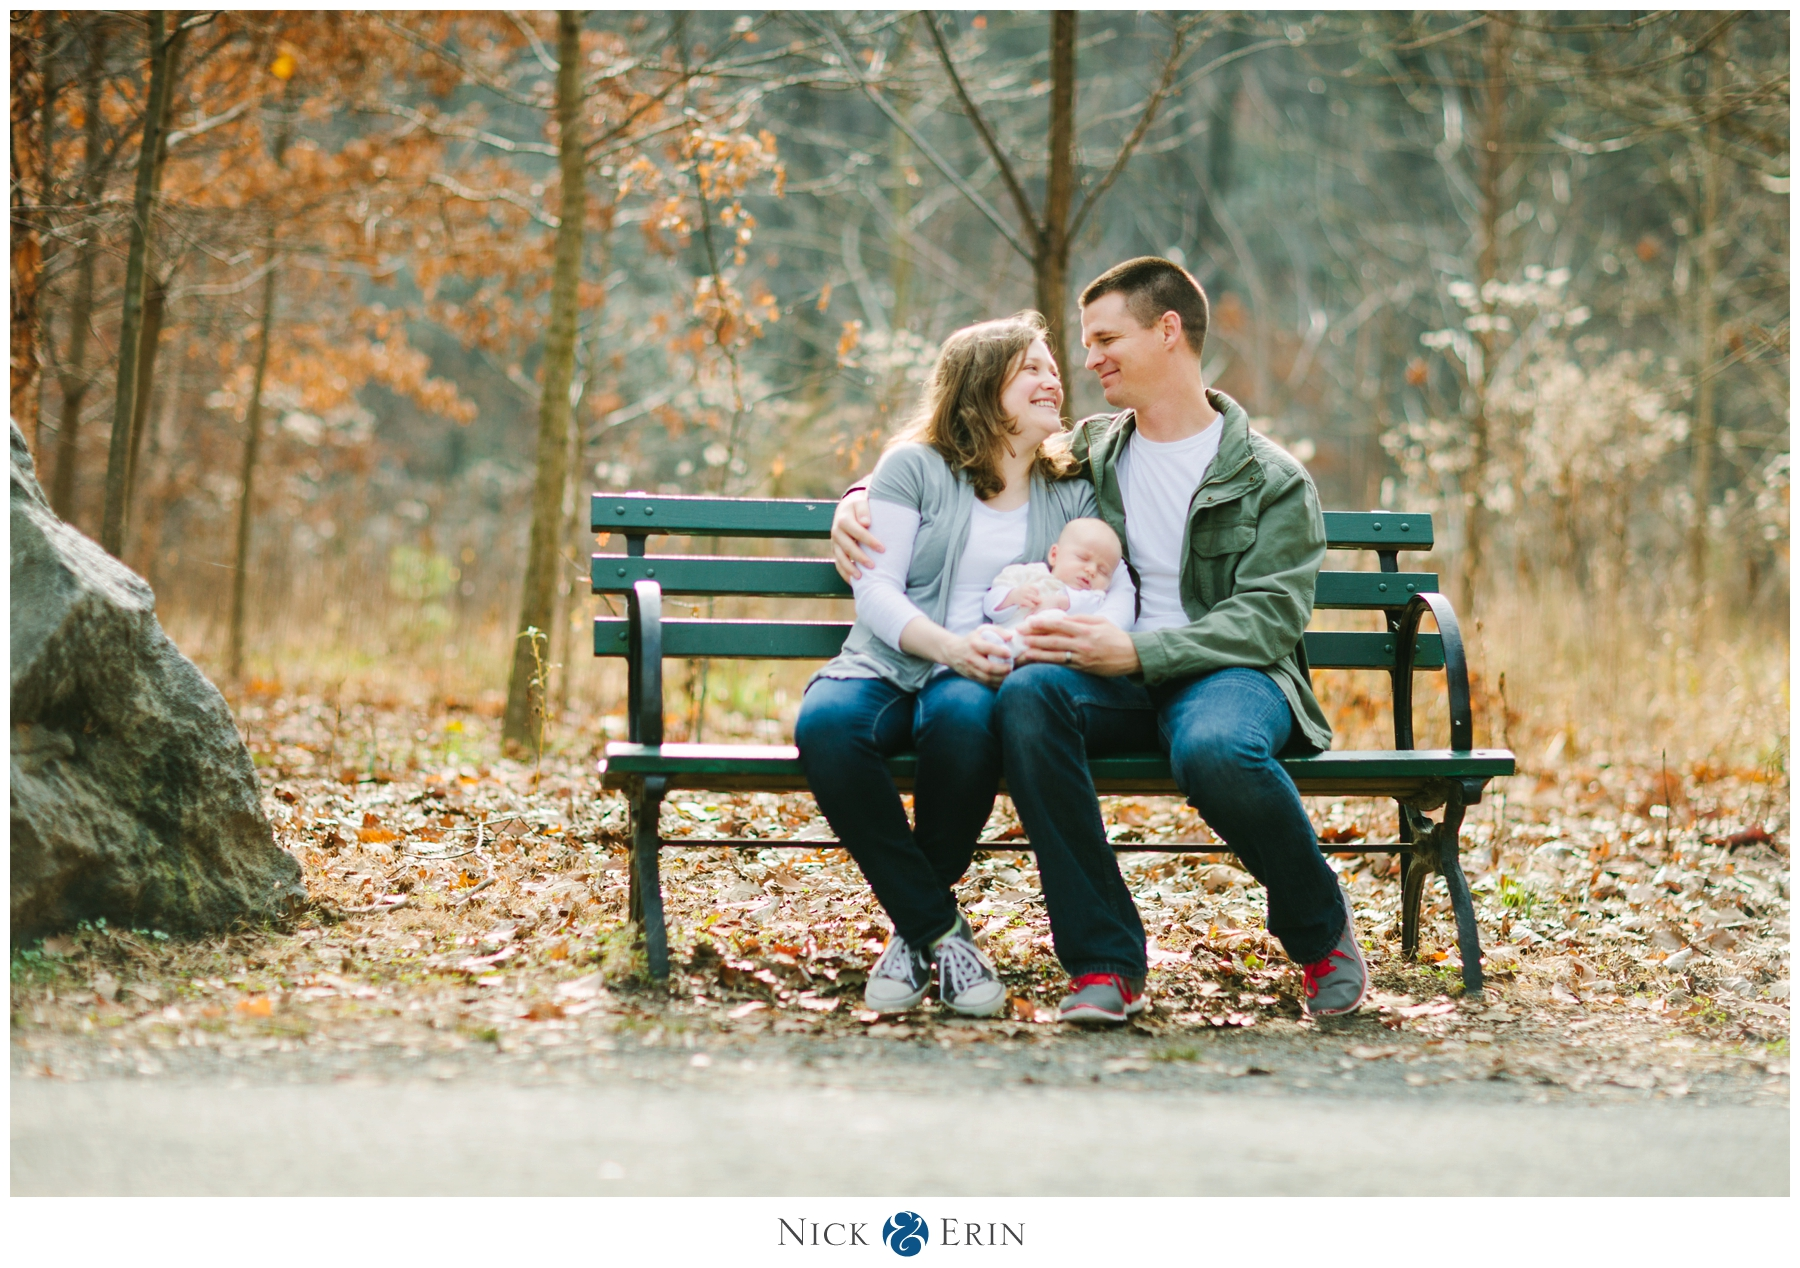 Donner_Photography_Woods Family Portraits_0009